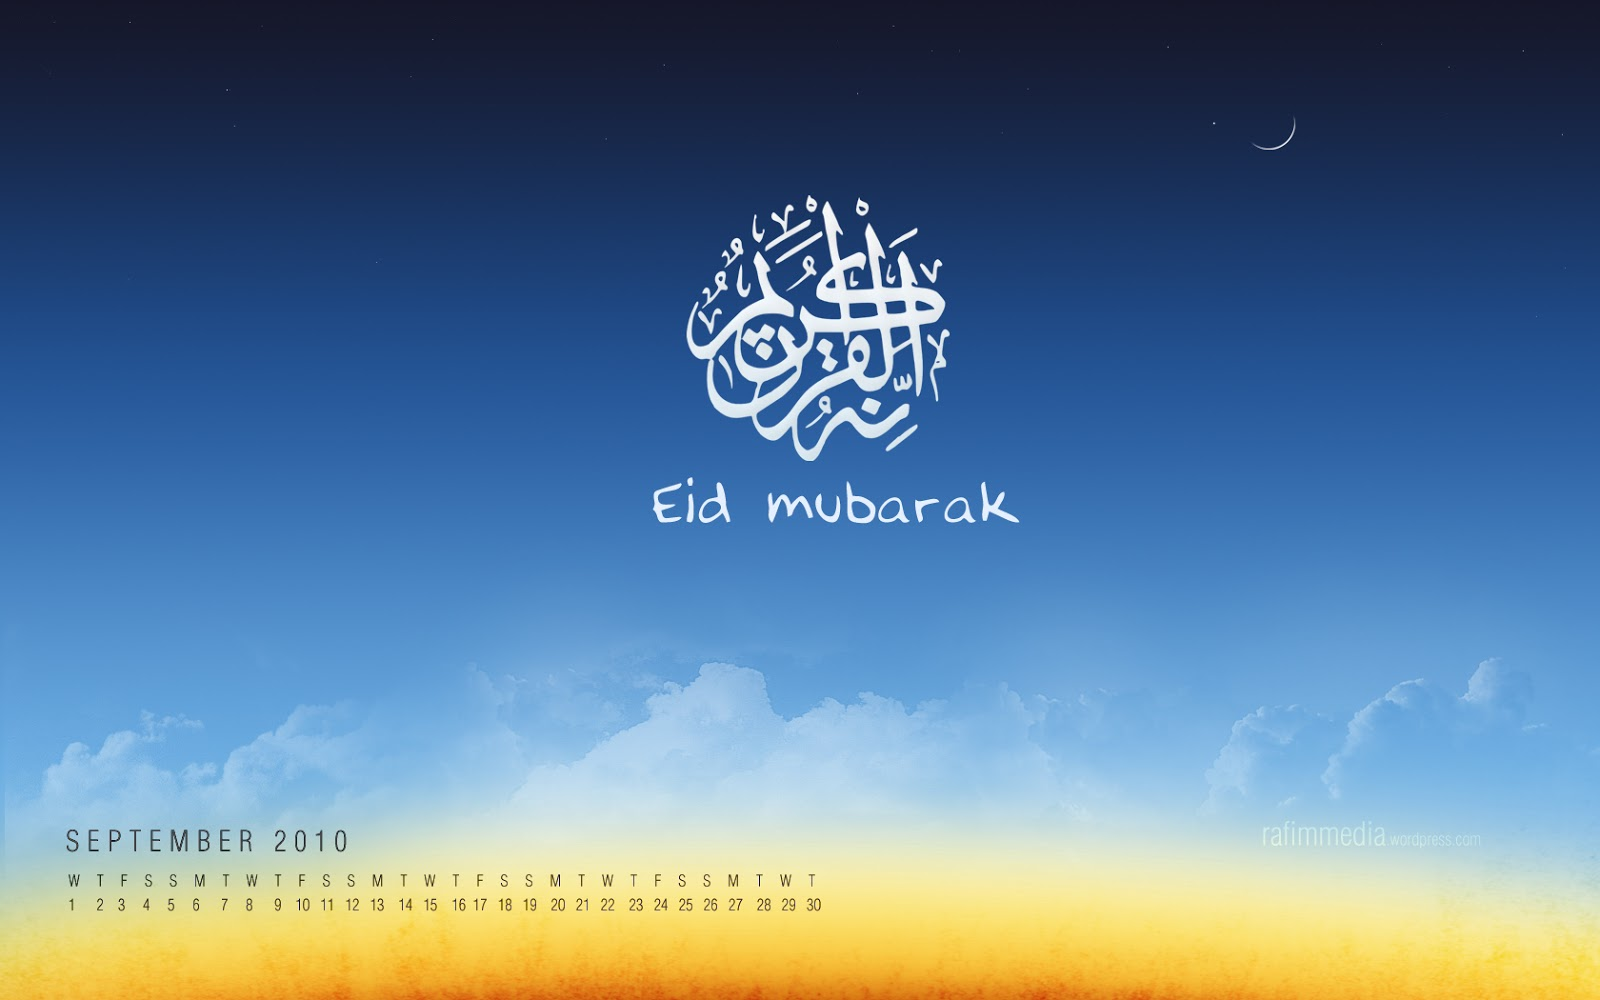 Simple Facebook Cover 2016 Ied Wallpaper - Eid_ul_Fitr_Greetings_Happy_Eid_Mubarak_HD_Desktop_Wallpapers_Greeting_Cards_Pictures_Facebook_fb_Timeline_Covers_Backgrounds-11  Best Photo Reference_177862 .jpg